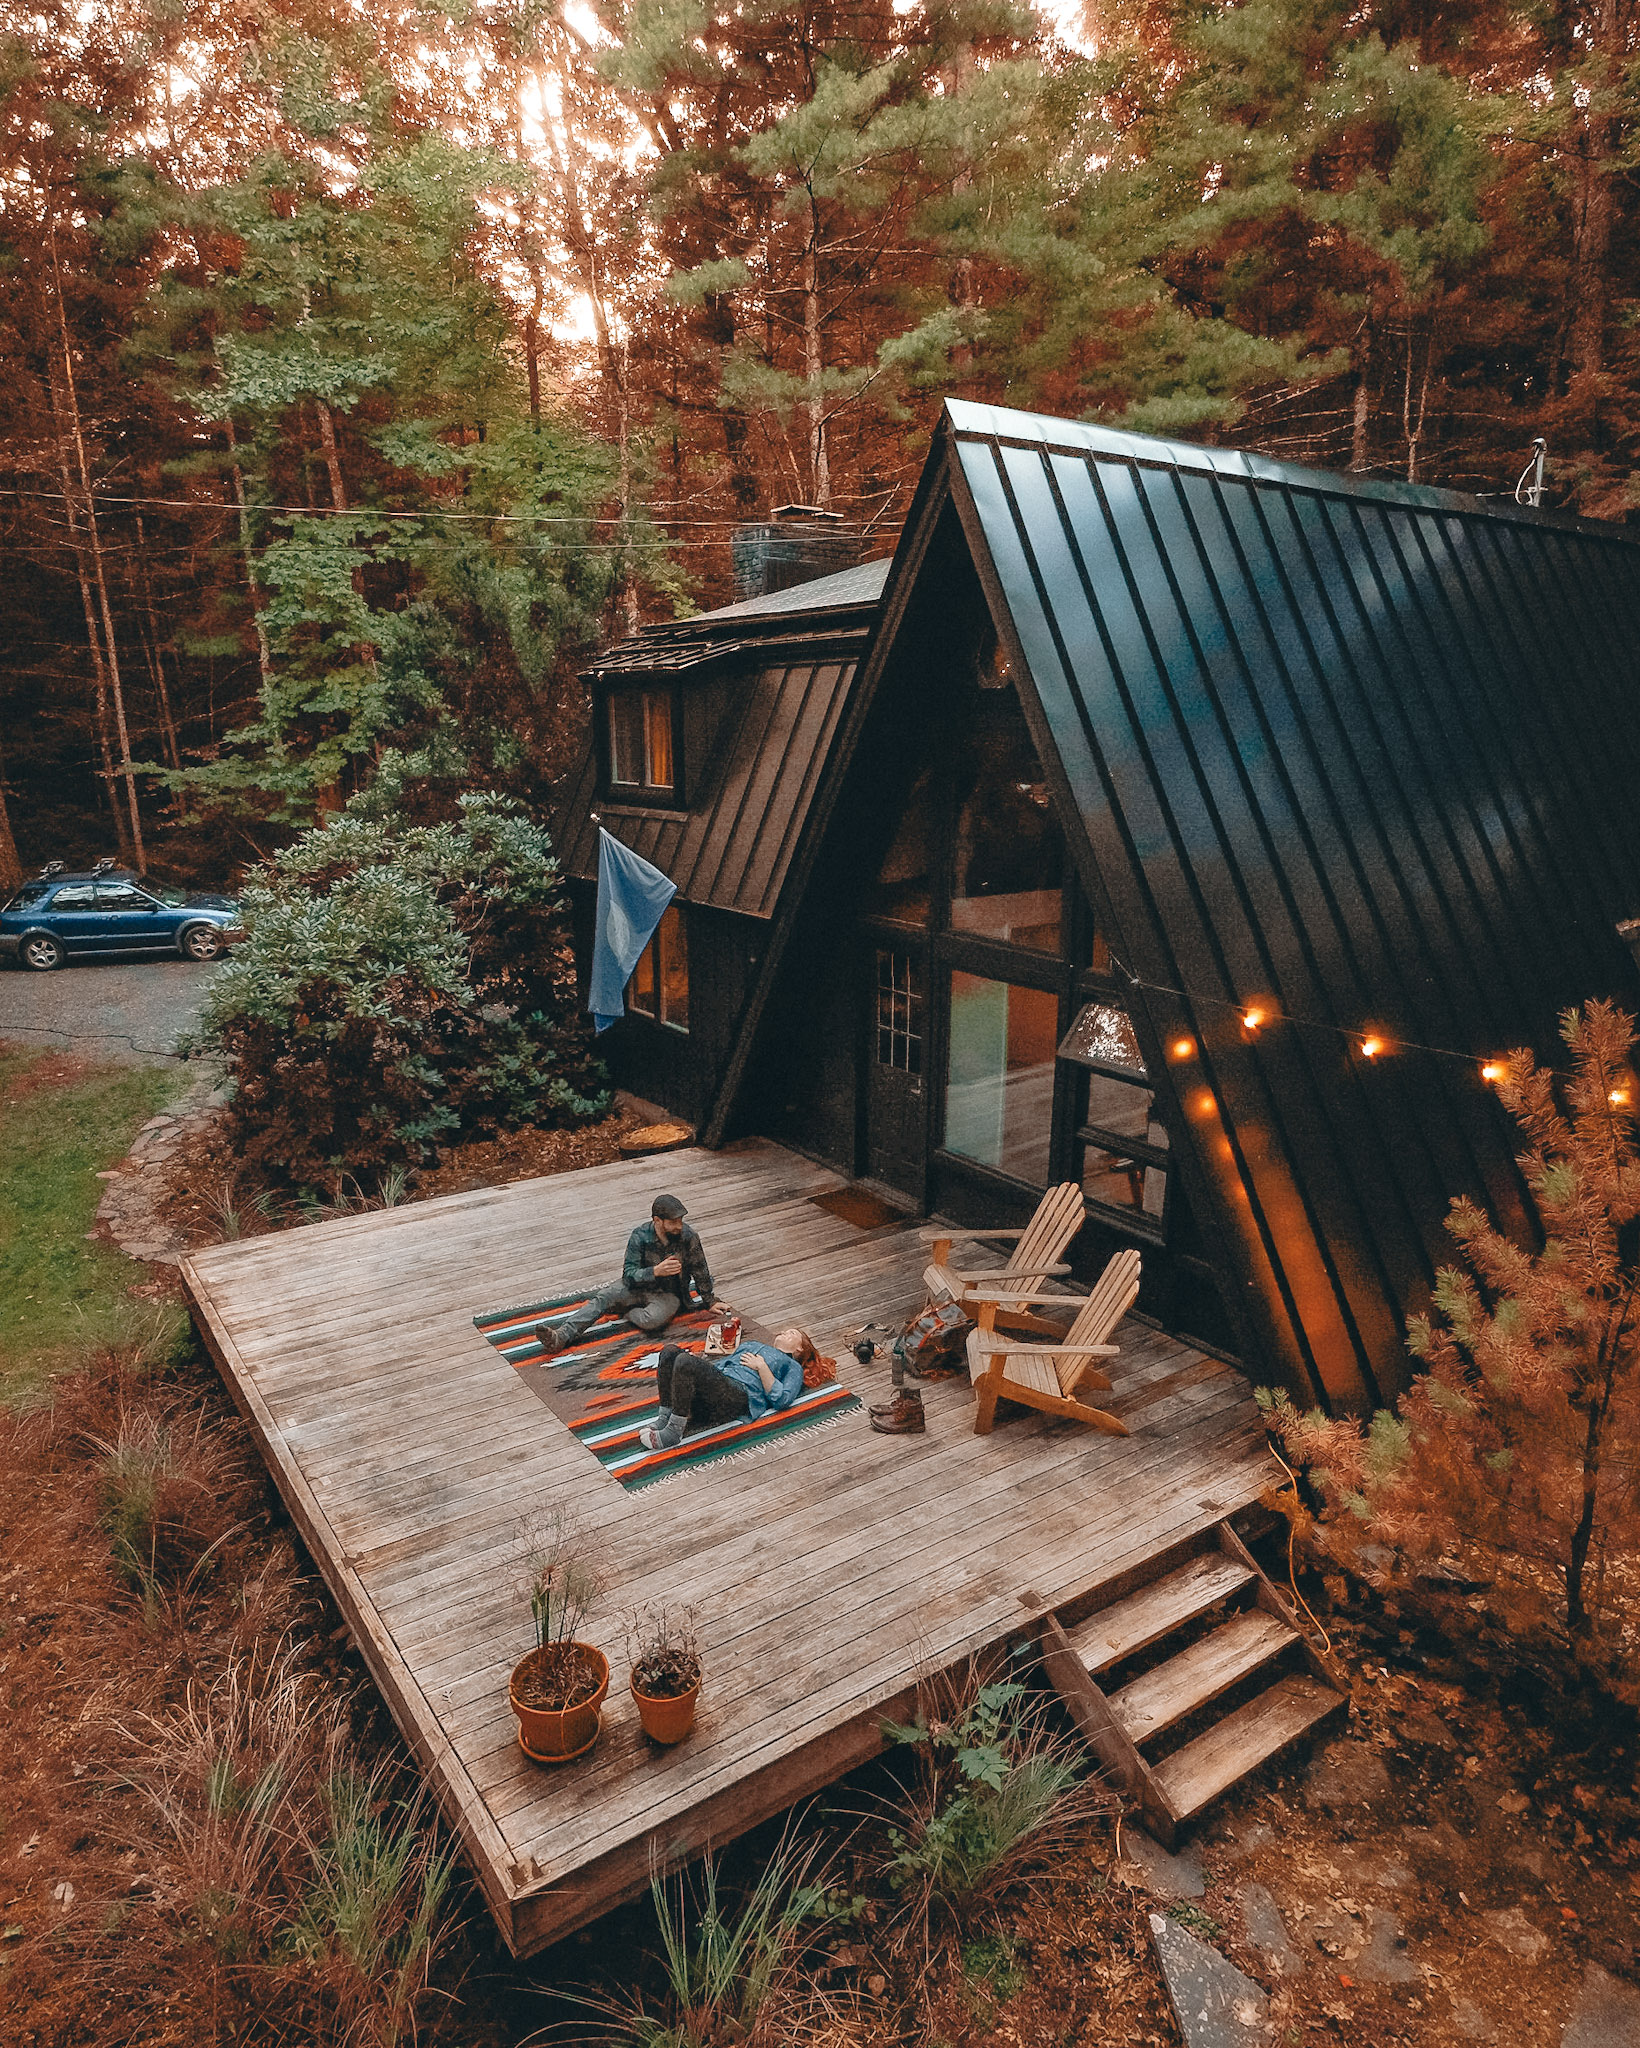 'A Black A-Frame' Kerhonkson, NY - Photo: Chris Daniele